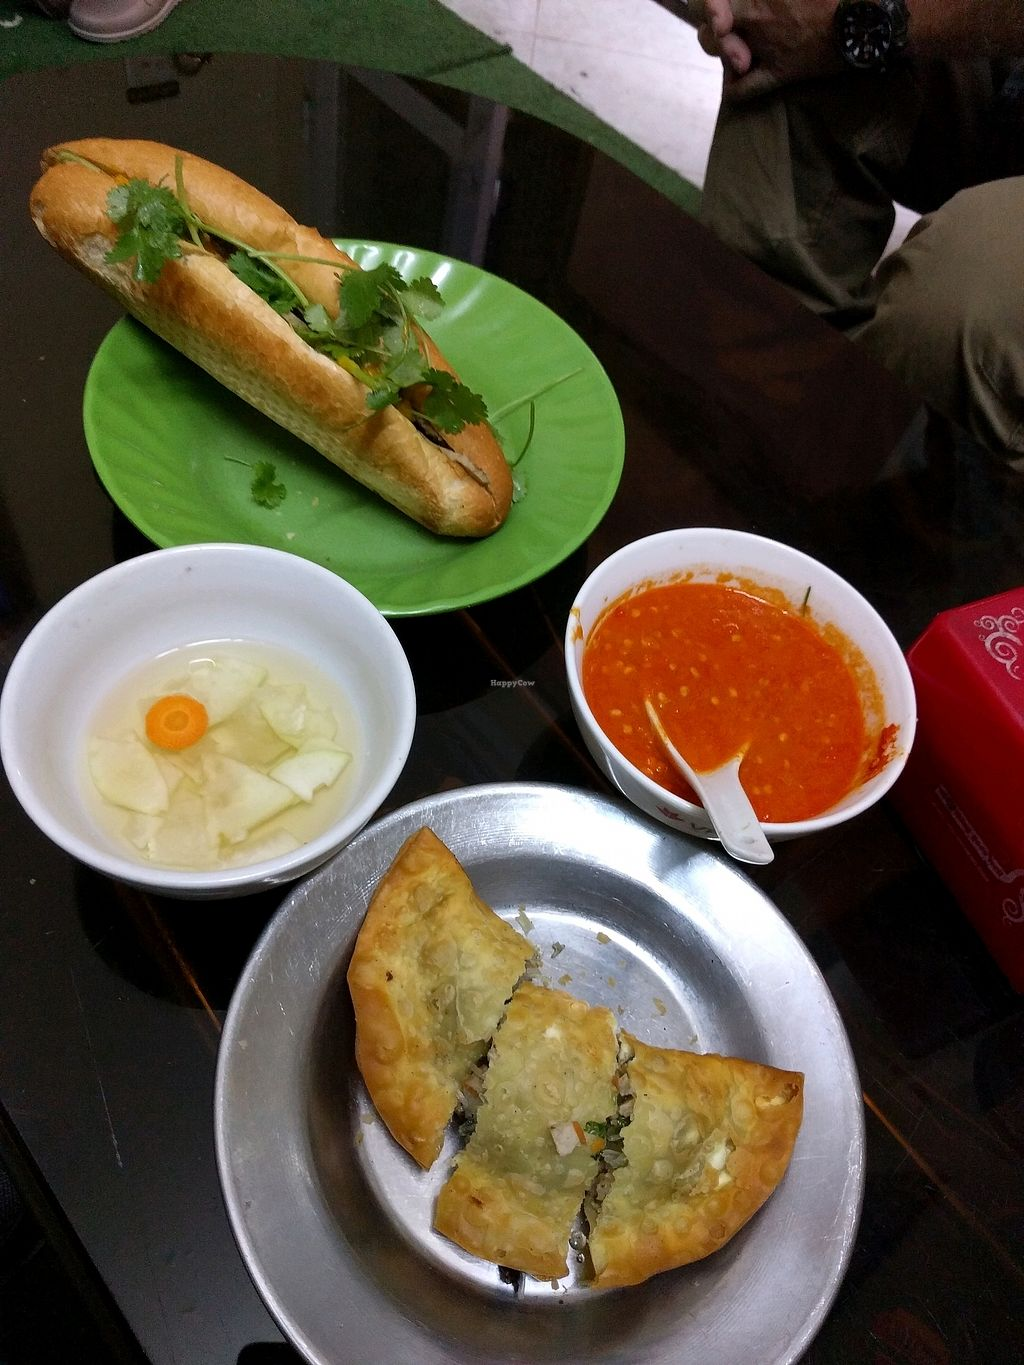 """Photo of Vegan Banh Mi - Food Cart  by <a href=""""/members/profile/mikeandsunny"""">mikeandsunny</a> <br/>banh mi and 'pillow donut' <br/> January 22, 2018  - <a href='/contact/abuse/image/62847/349700'>Report</a>"""